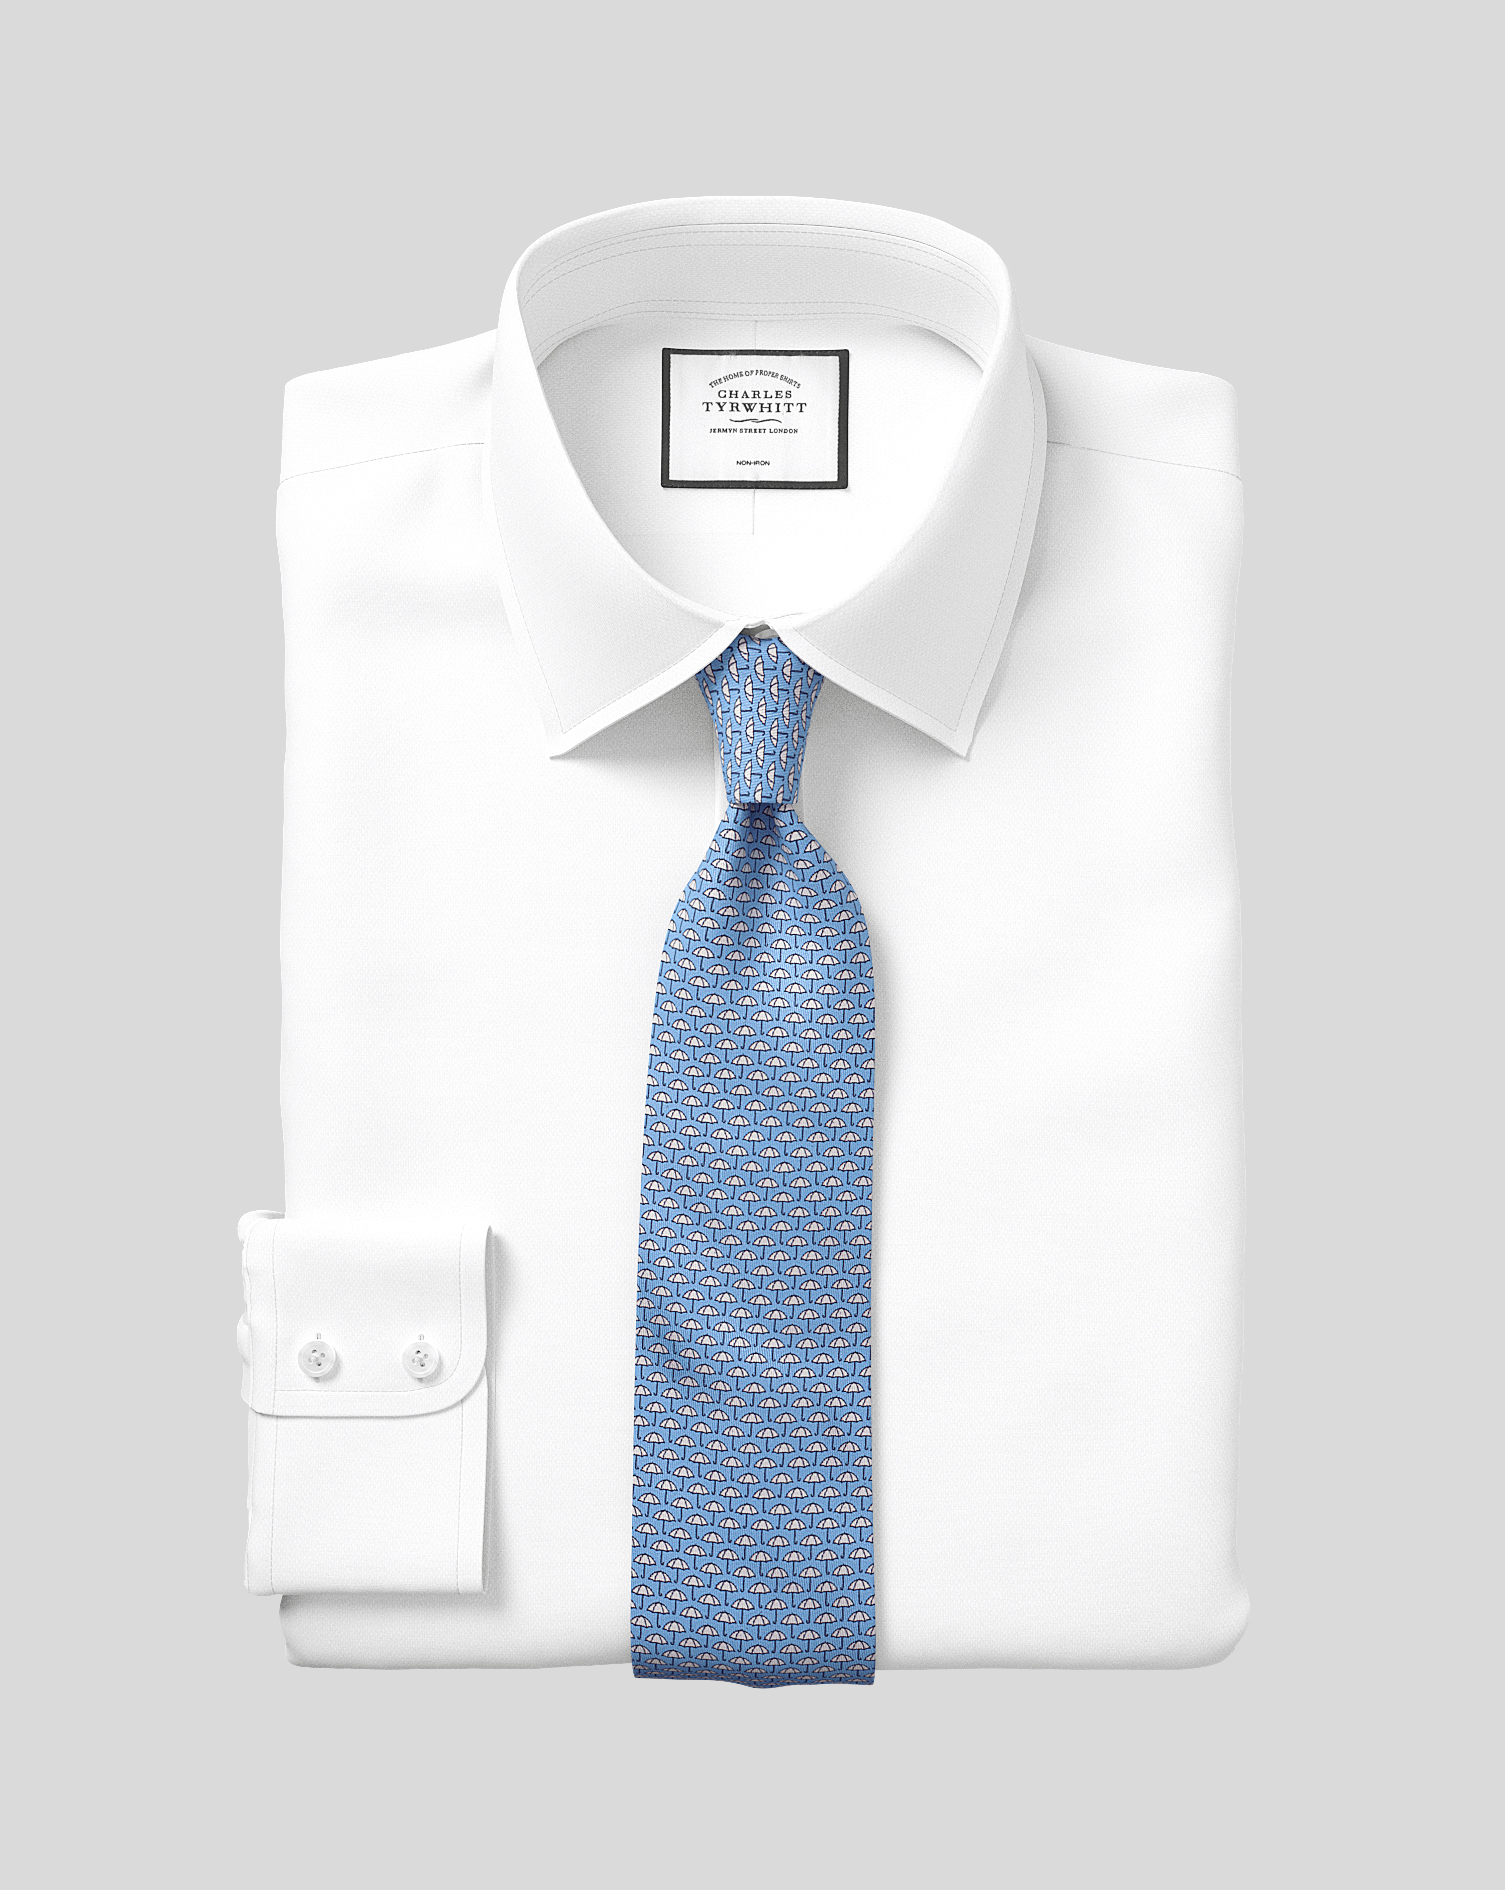 Classic Fit Non-Iron White Royal Panama Cotton Formal Shirt Double Cuff Size 16.5/33 by Charles Tyrw